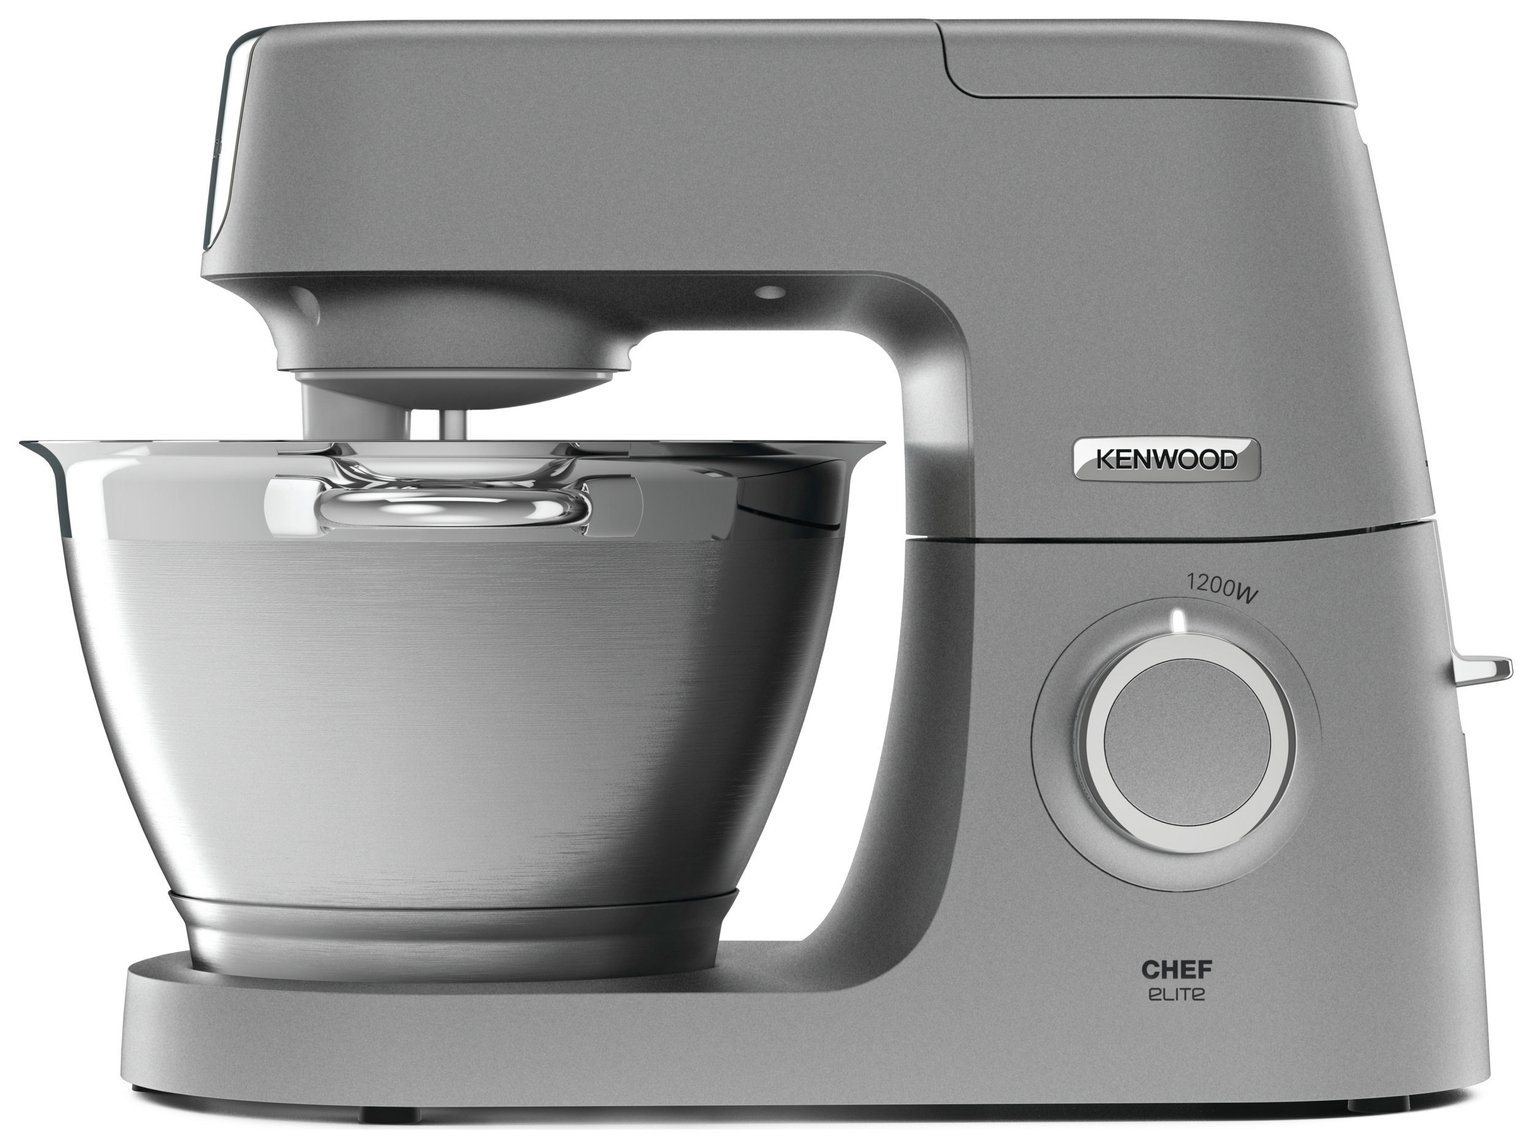 Kenwood Chef Elite KVC5100S Kitchen Machine - Titanium